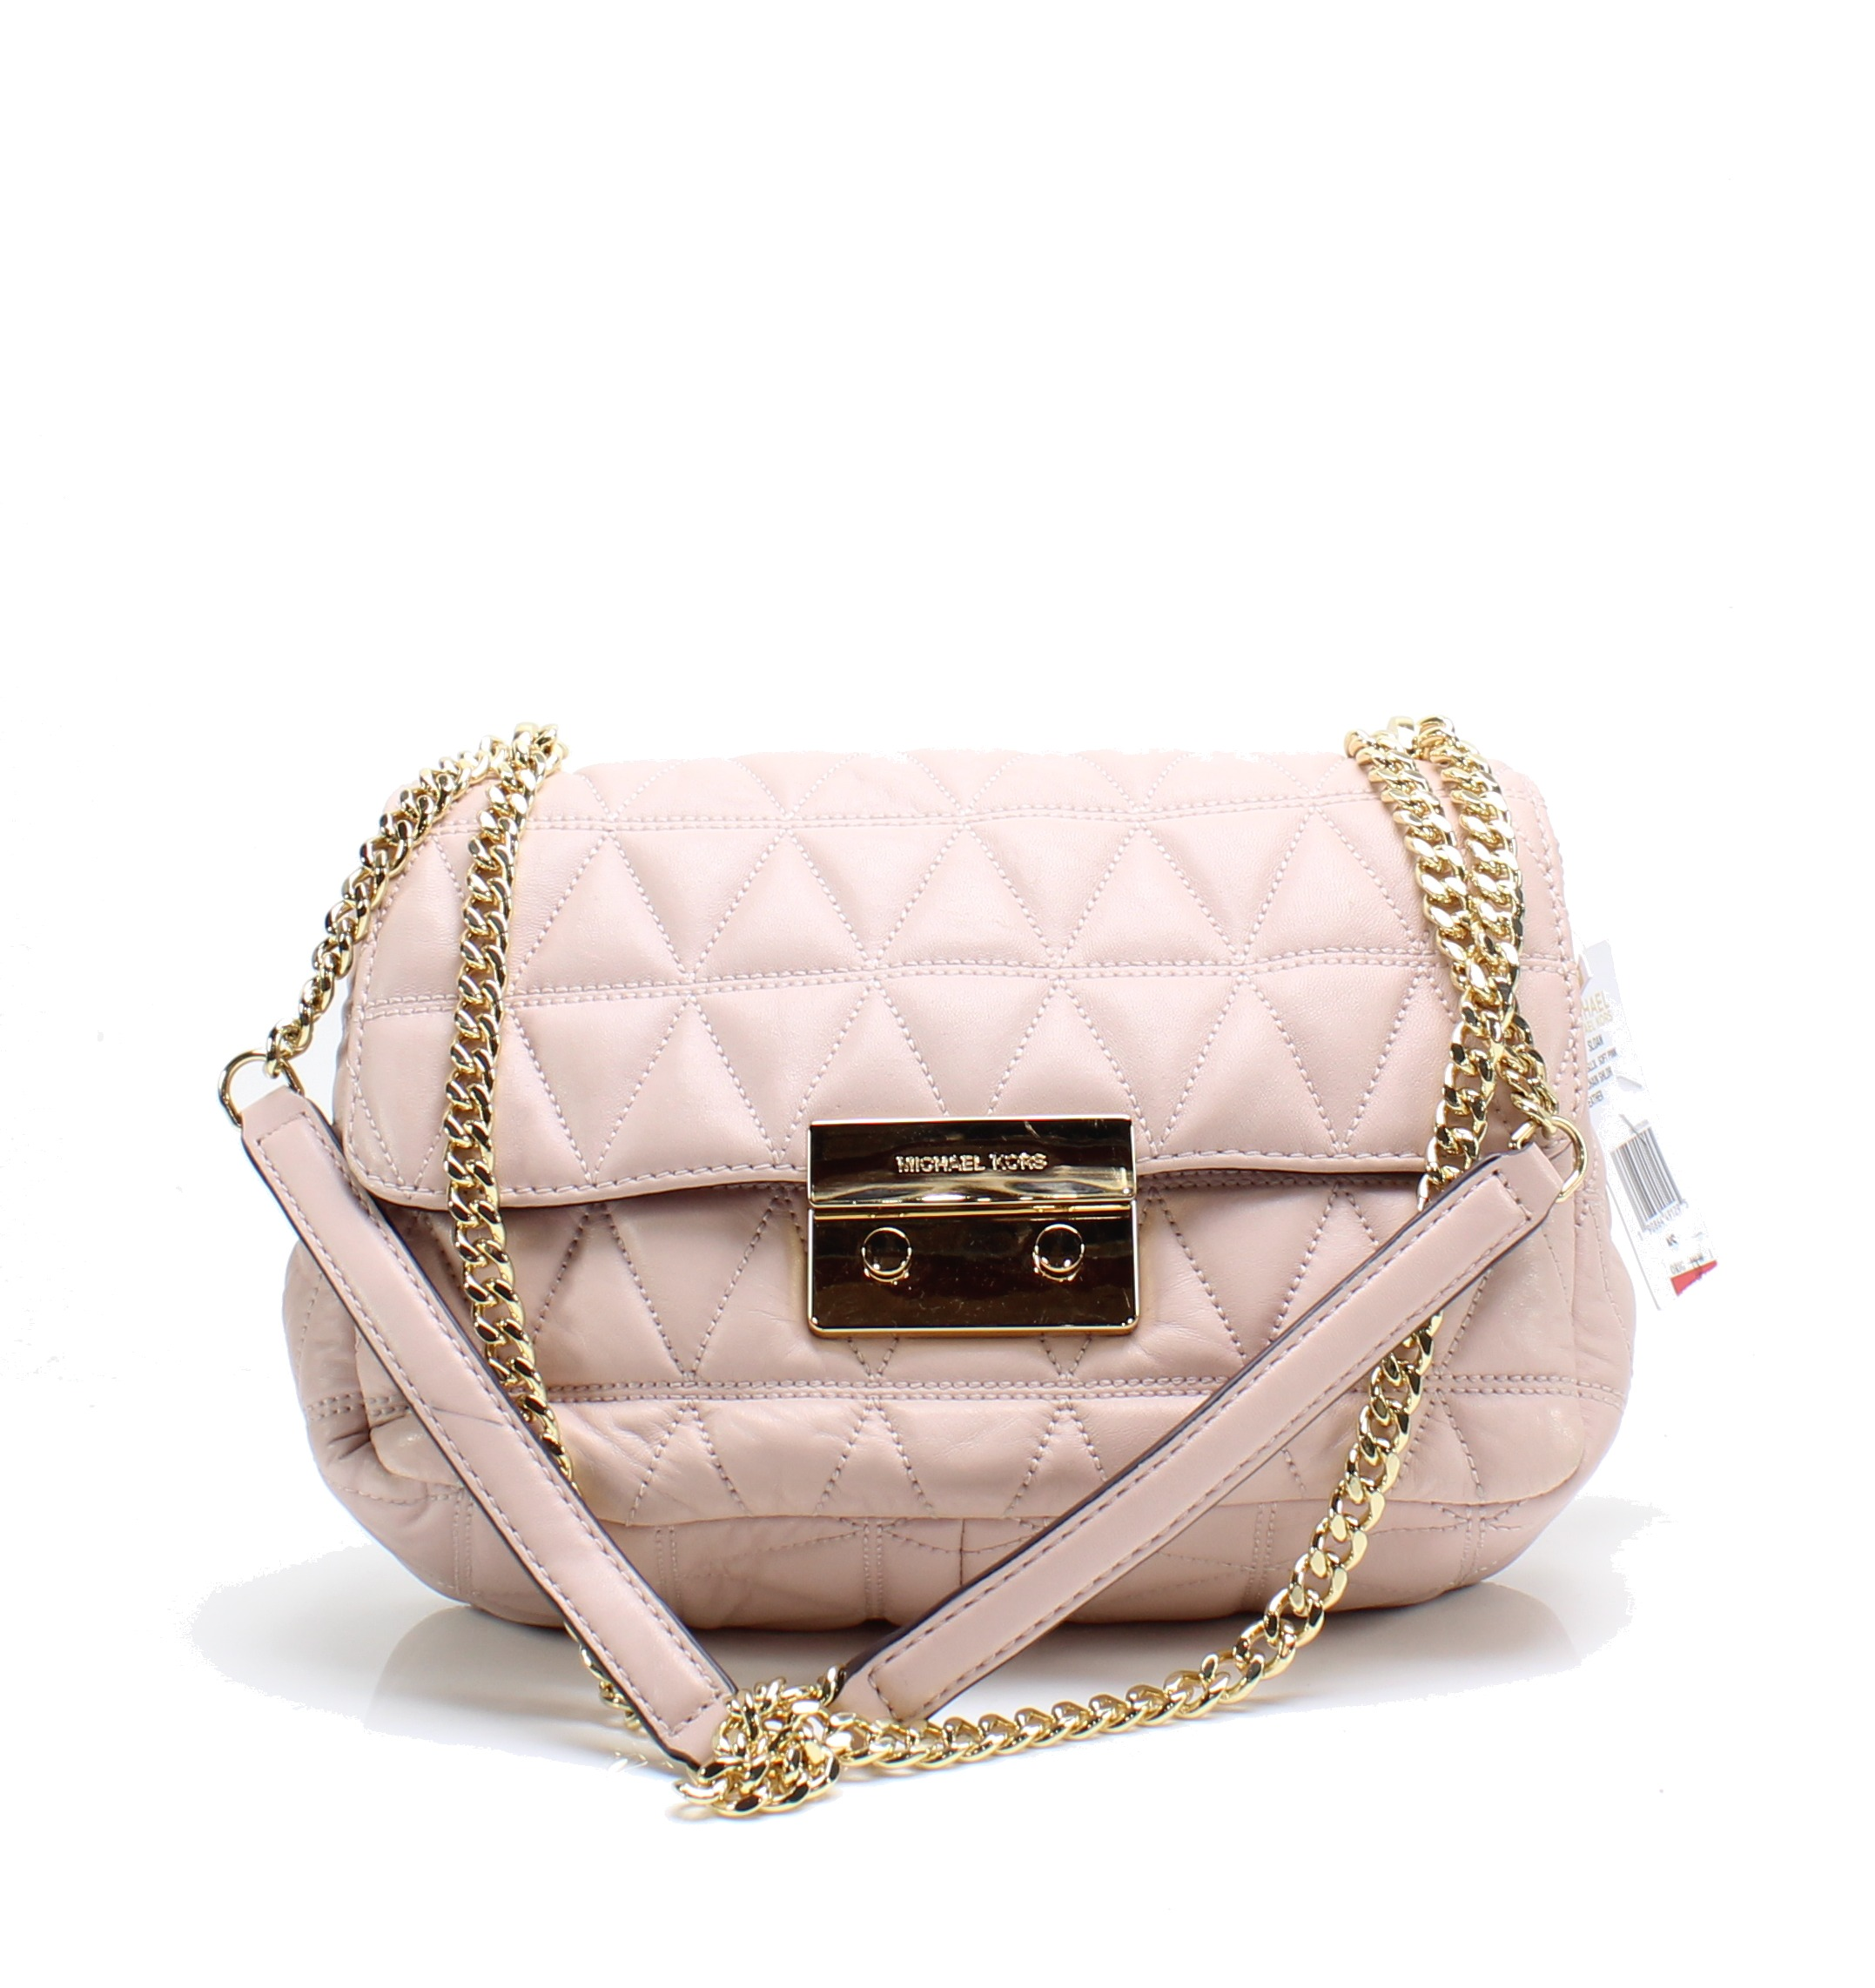 294544126732cc Details about Michael Kors NEW Soft Pink Sloan Large Quilted-Leather Shoulder  Bag $328- #002